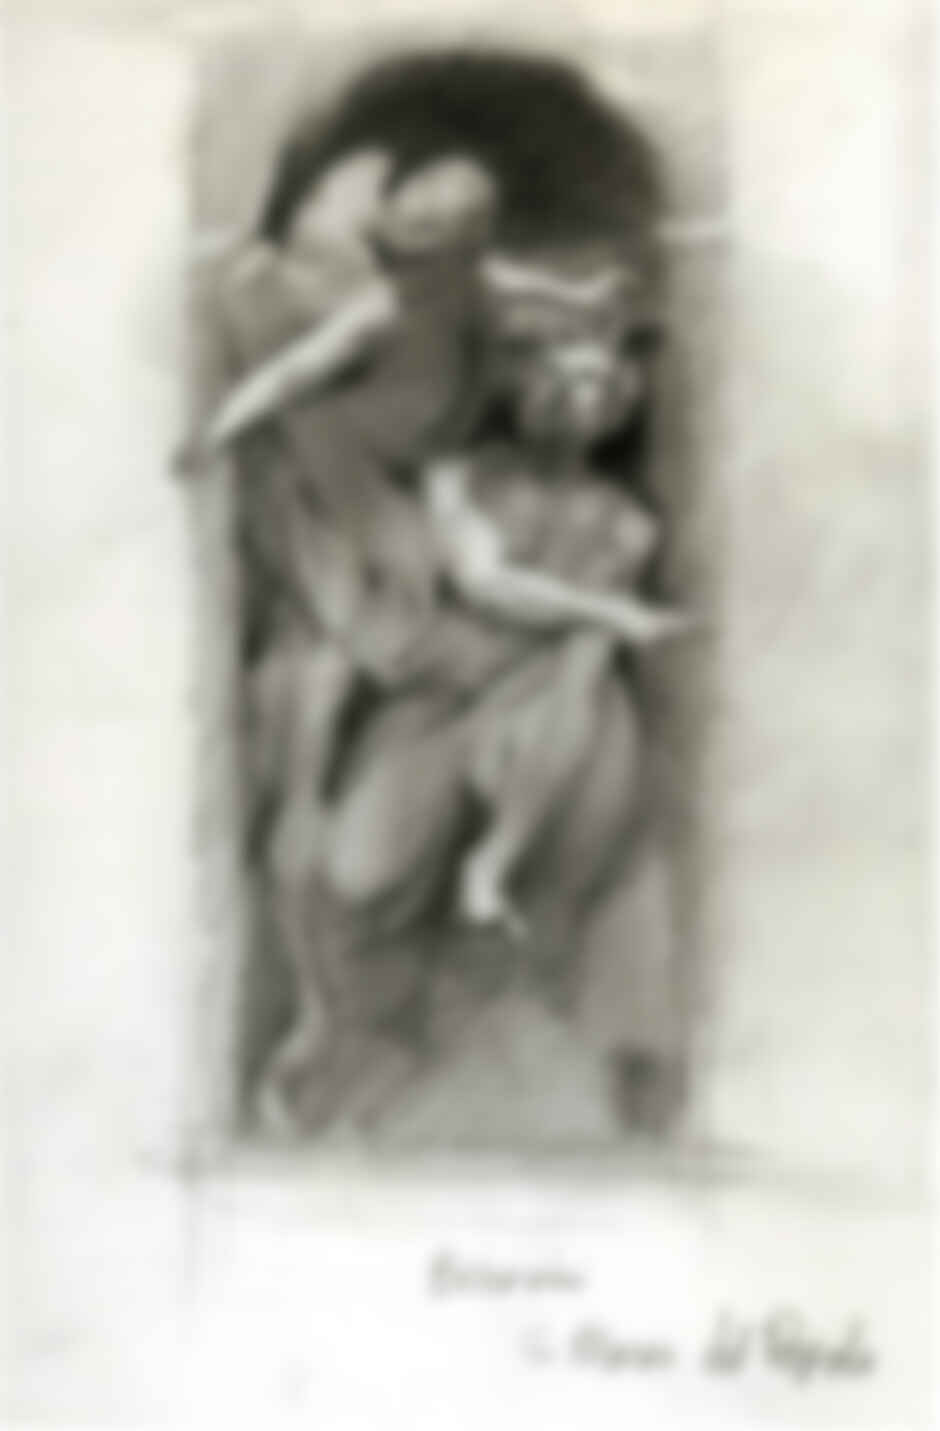 """When the artist was a student in Rome for a year in the early 90s, he filled seven sketchbooks while """"wandering the streets, drawing and painting anything and everything."""" This particular sketch, he says, is of """"Bernini's beautiful sculpture (his sculptures are all beautiful) titled Habakkuk and the Angel, in Santa Maria del Popolo."""""""